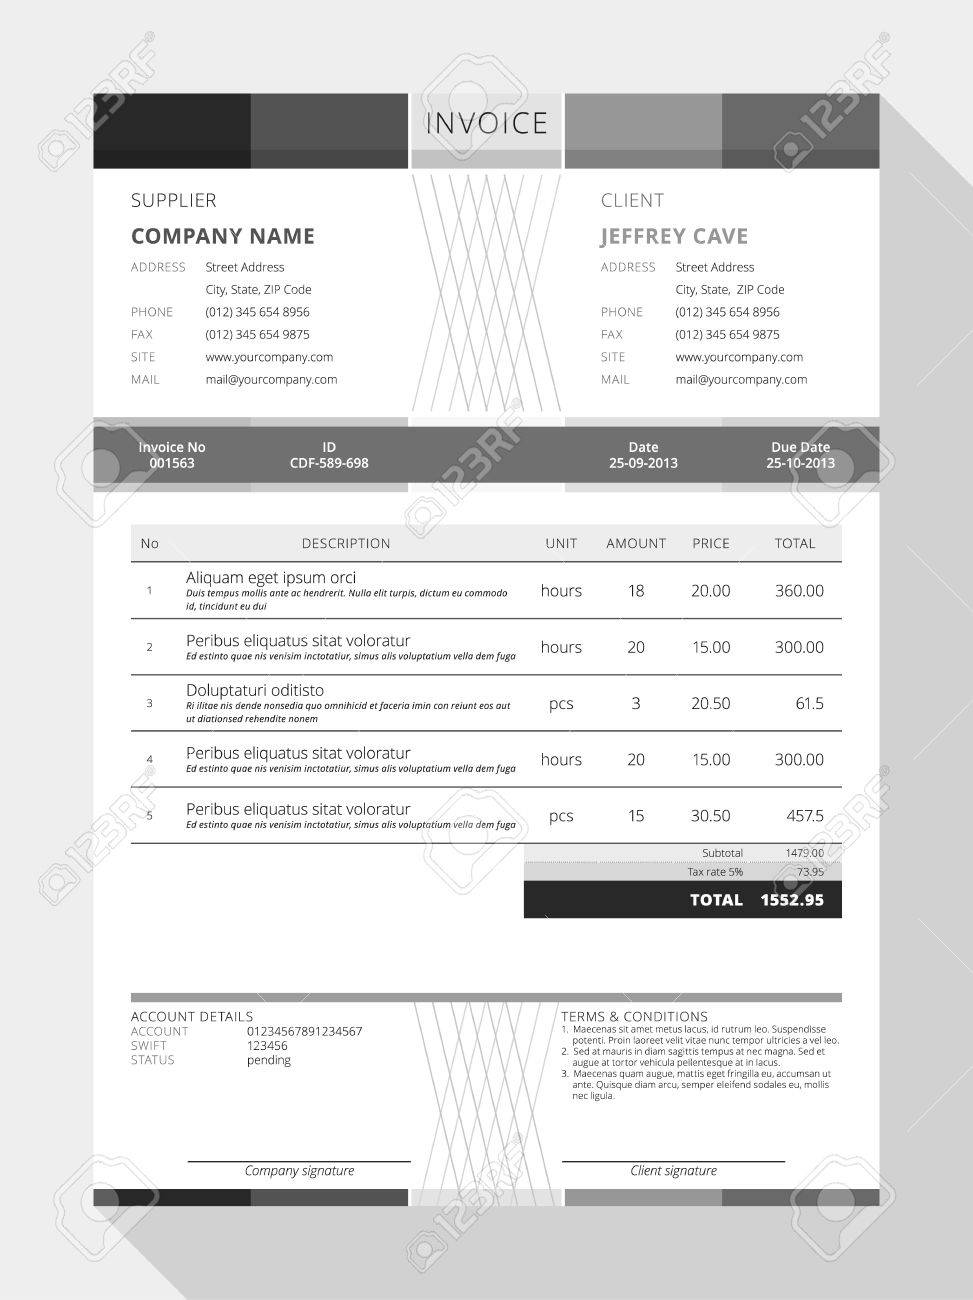 Darkfaderus  Mesmerizing Design An Invoice  Professional Graphic Design Invoice  With Goodlooking Vector Customizable Invoice Form Template Design Vector   Design An Invoice With Comely Receipt Notice Also How Do I Enter Receipts Into Quickbooks In Addition Sample Letter For Lost Receipt And Other Words For Receipt As Well As Spanish Receipt Additionally Proximiant Digital Receipts From Happytomco With Darkfaderus  Goodlooking Design An Invoice  Professional Graphic Design Invoice  With Comely Vector Customizable Invoice Form Template Design Vector   Design An Invoice And Mesmerizing Receipt Notice Also How Do I Enter Receipts Into Quickbooks In Addition Sample Letter For Lost Receipt From Happytomco